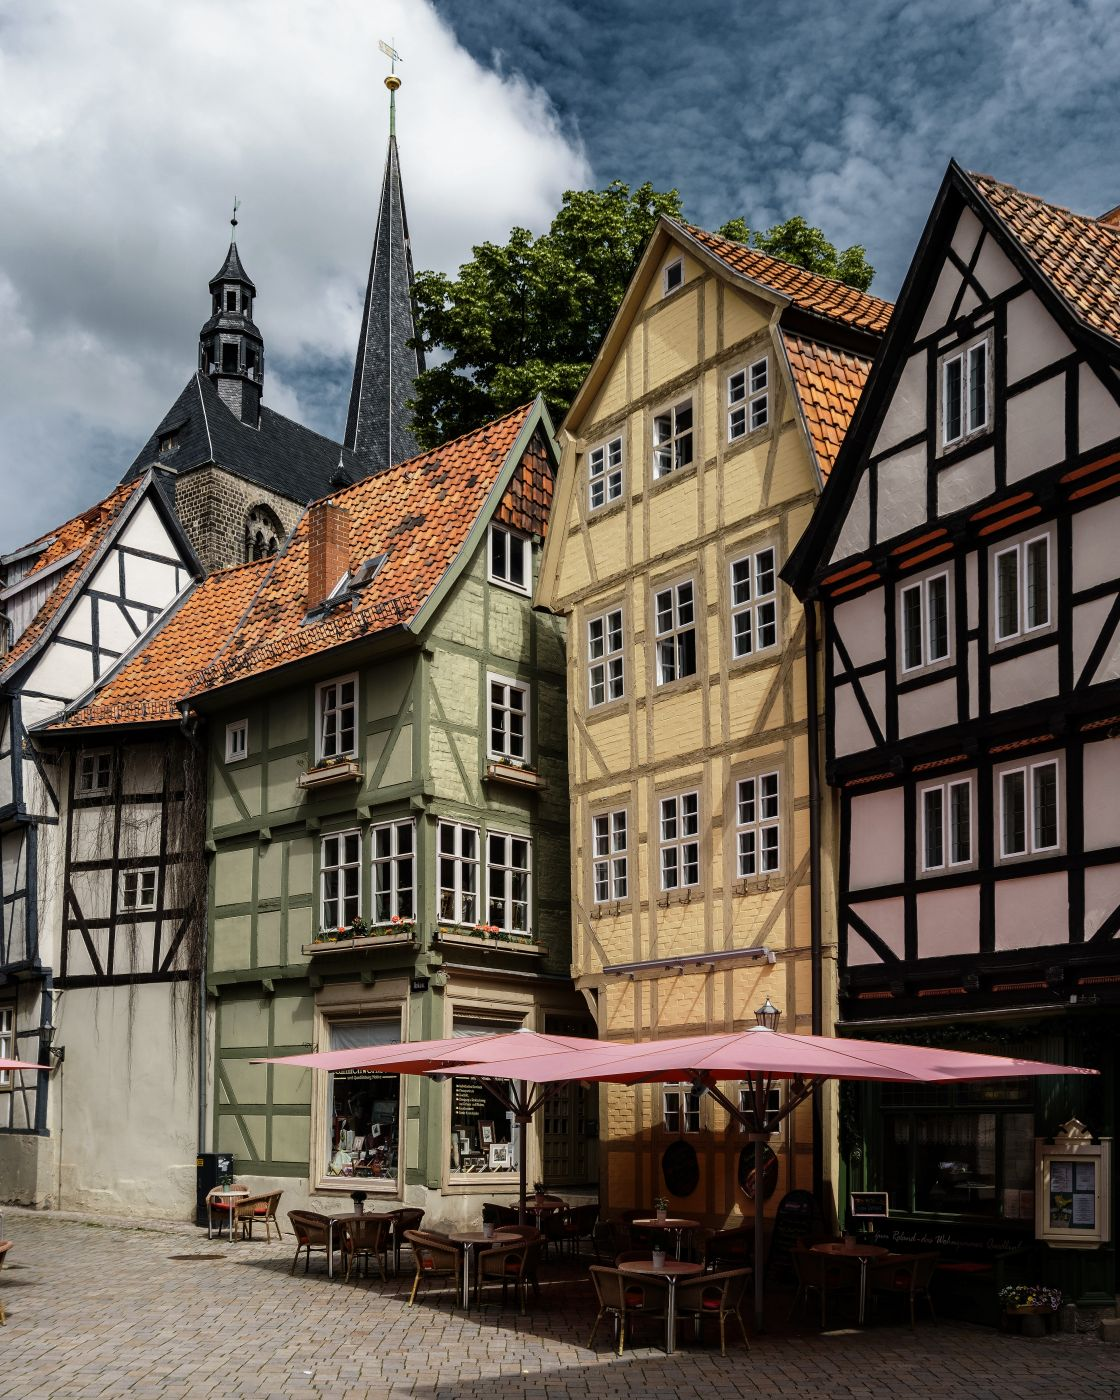 Half Timbered Houses in Quedlinburg, Germany